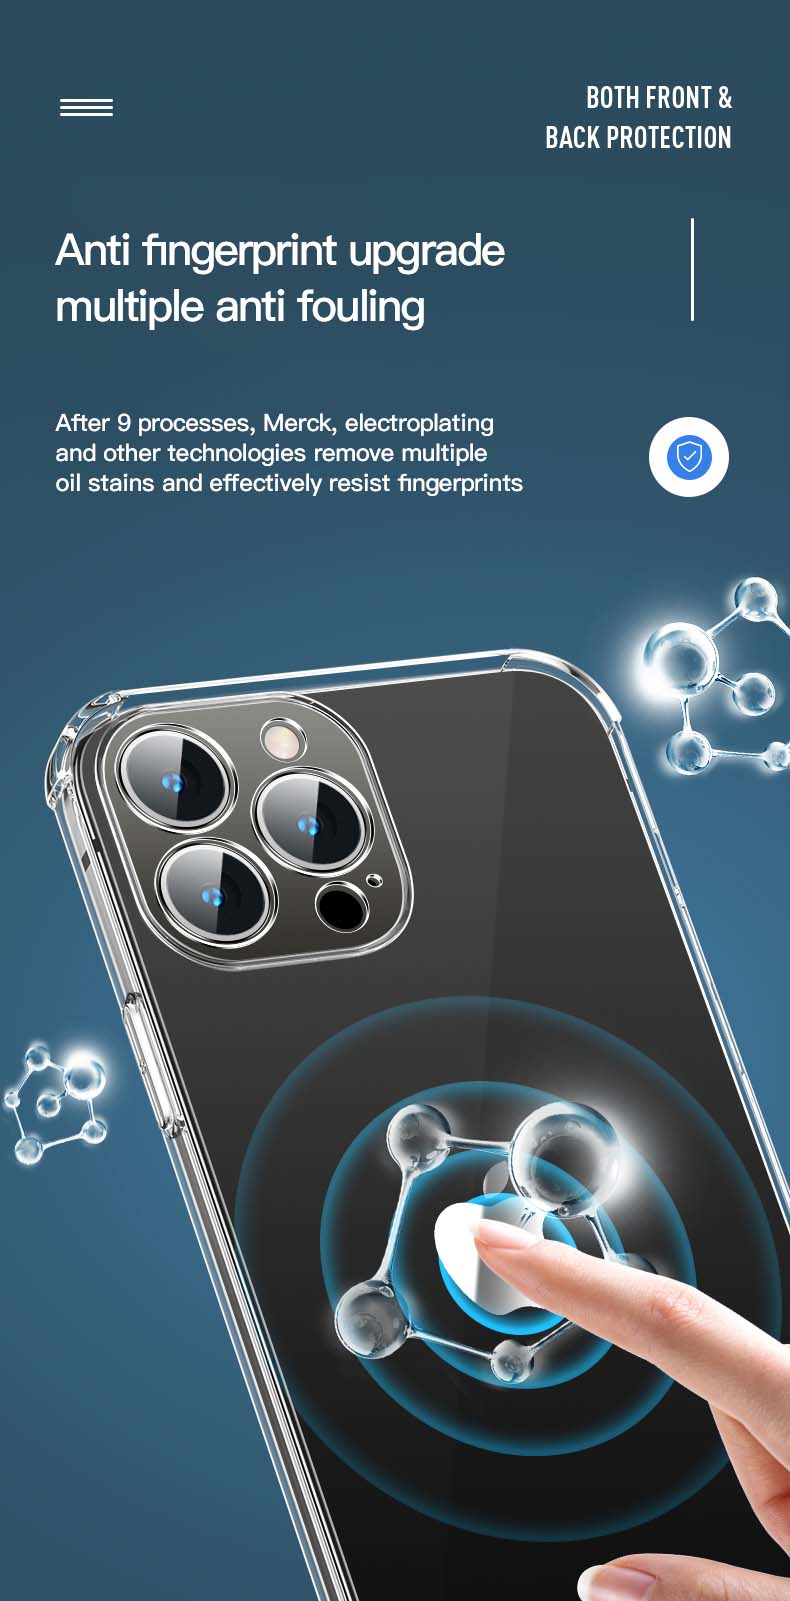 Ultra Thin Transparent Case For iPhone 13 Mini 13 Pro 13 Pro Max Soft TPU Case With AirBag Corner Protect And Full Lens Protection